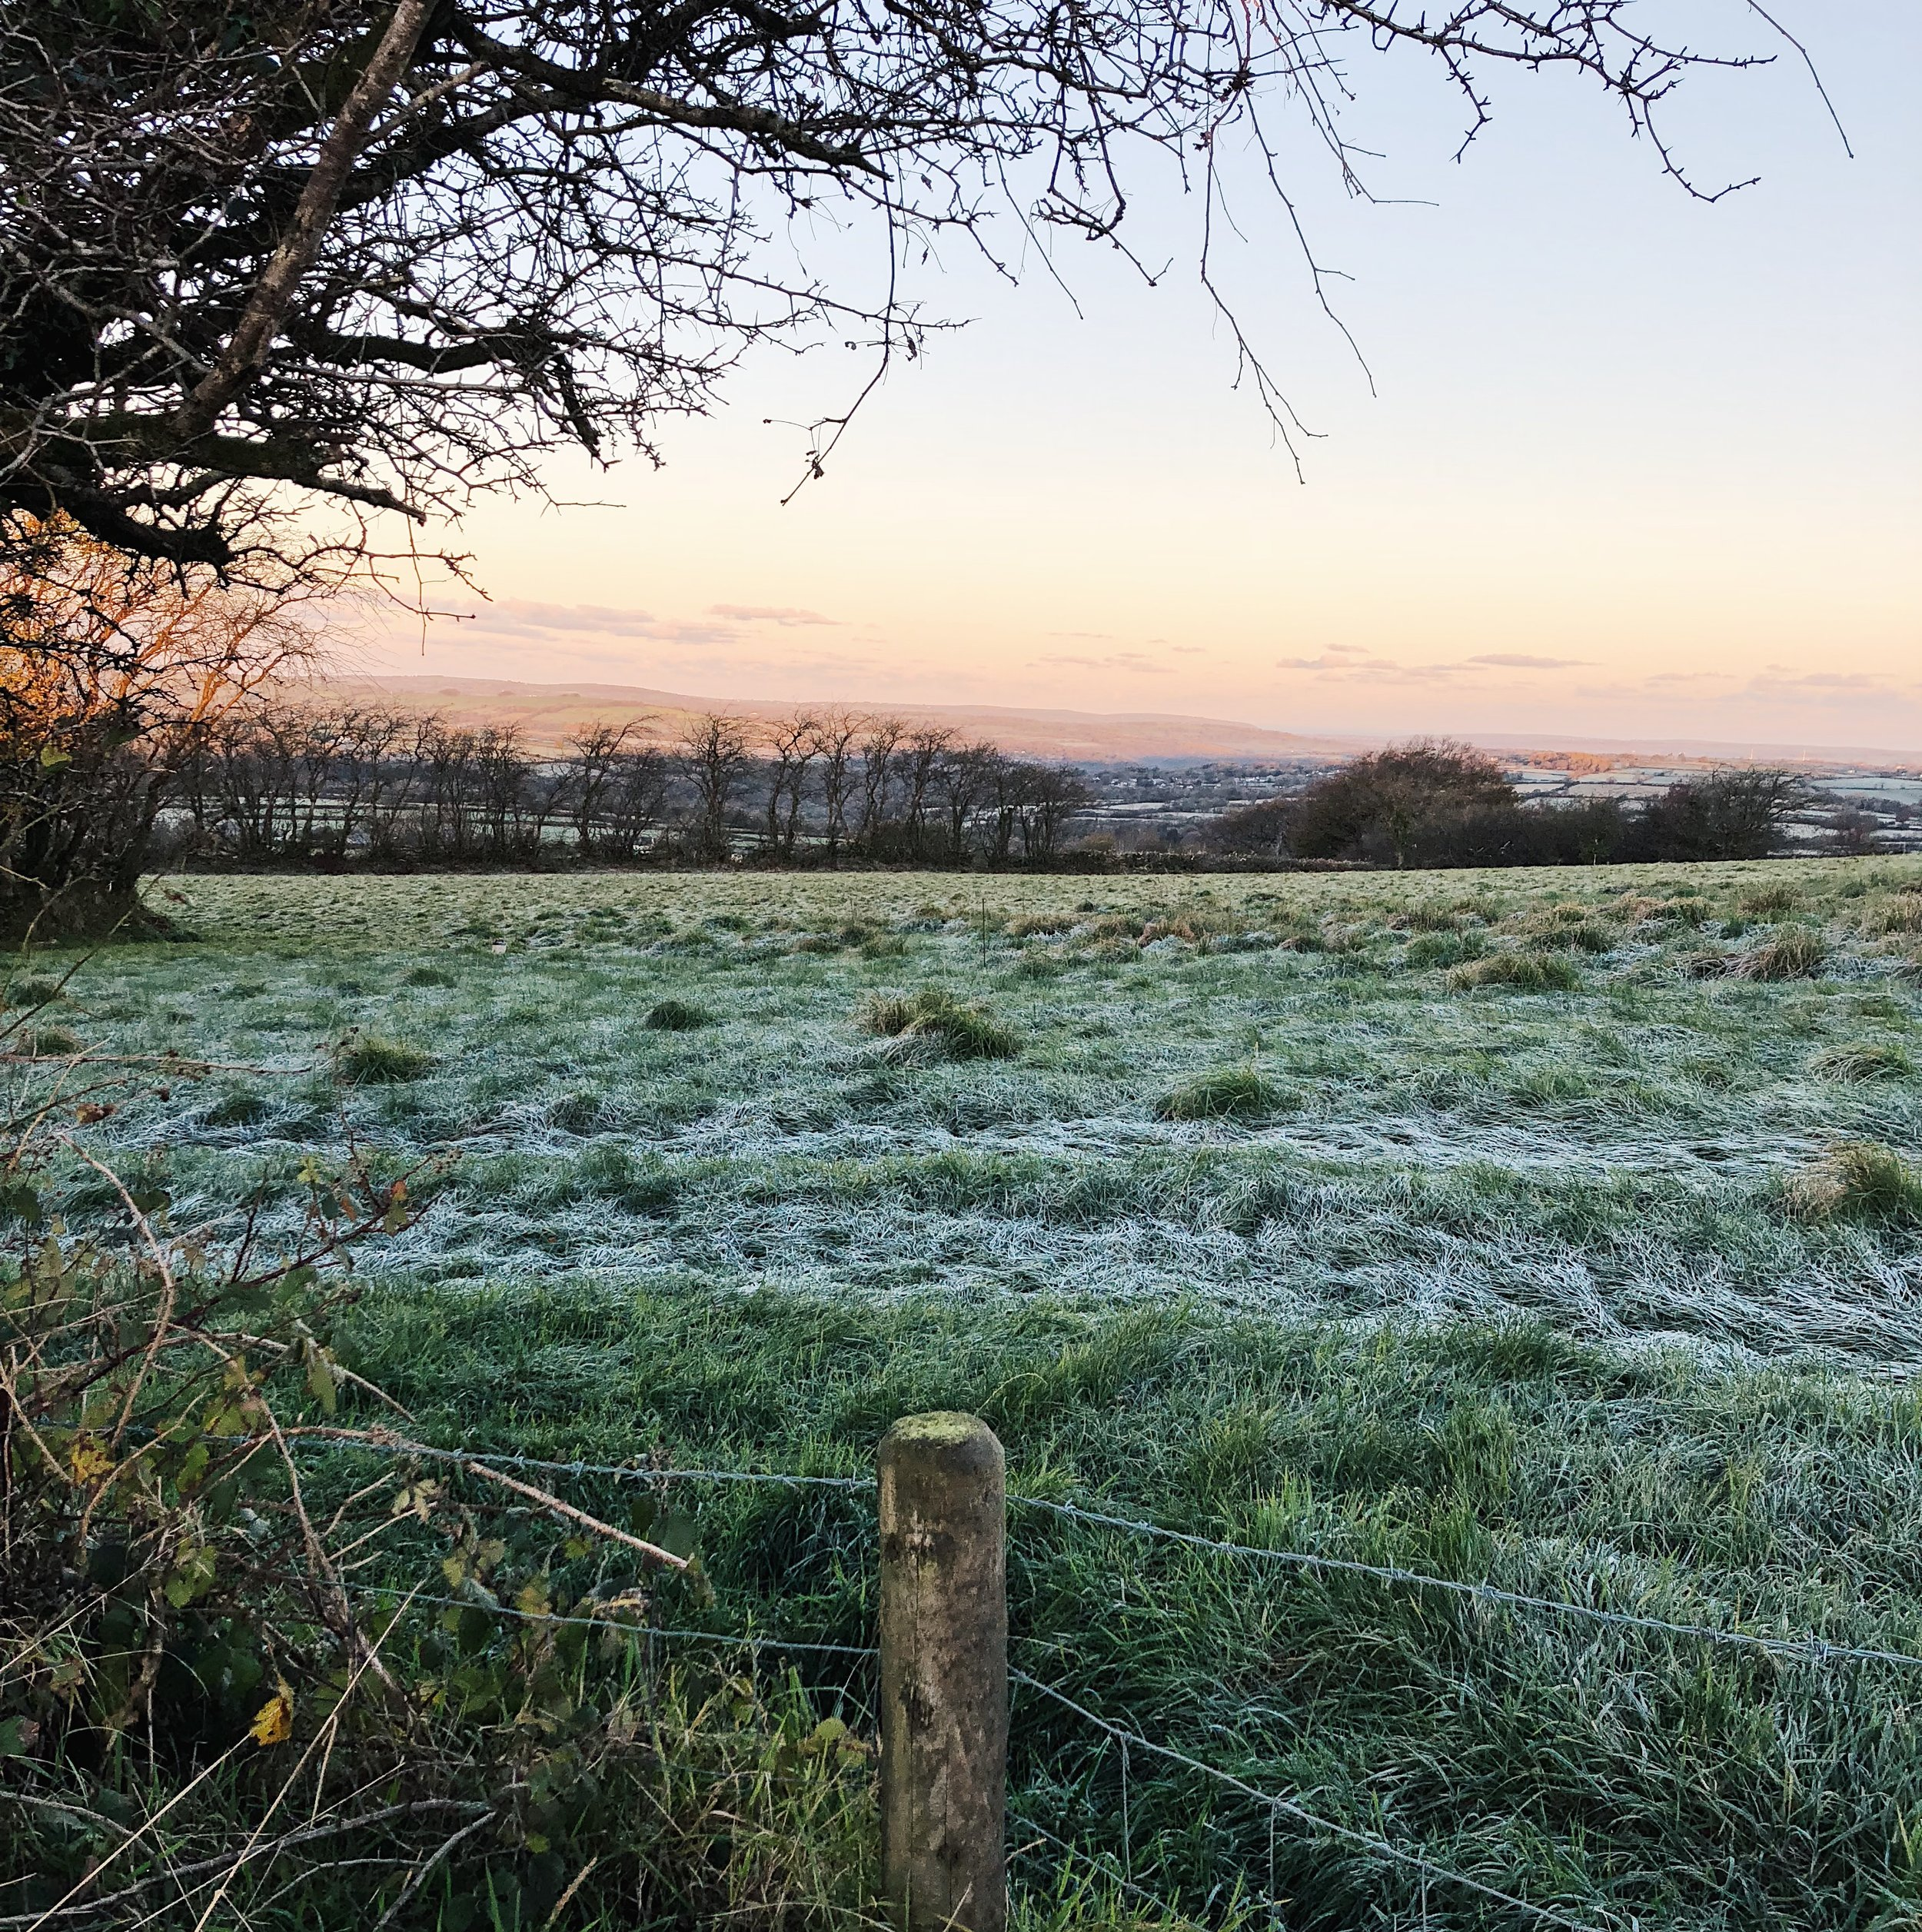 A crisp Autumn morning in Carmarthenshire. What a wonderful view to wake up to.